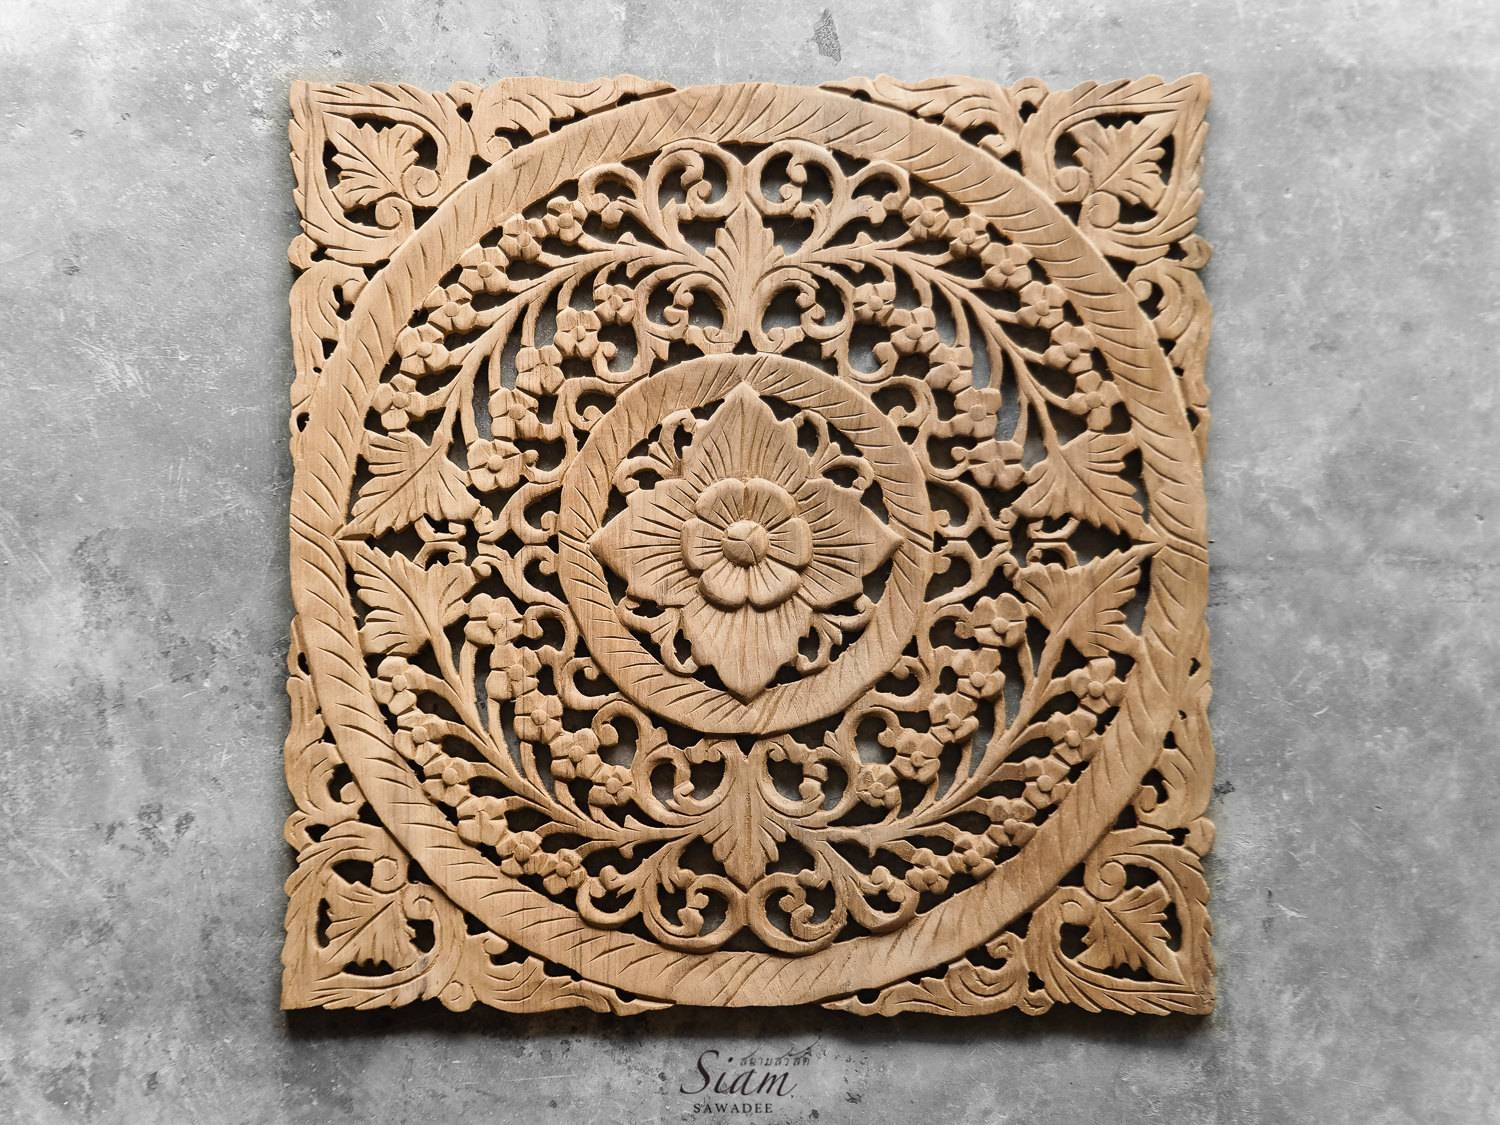 Carved Wooden Lotus Wall Hanging Panel – Siam Sawadee Regarding Most Recent Wood Carved Wall Art Panels (View 6 of 25)